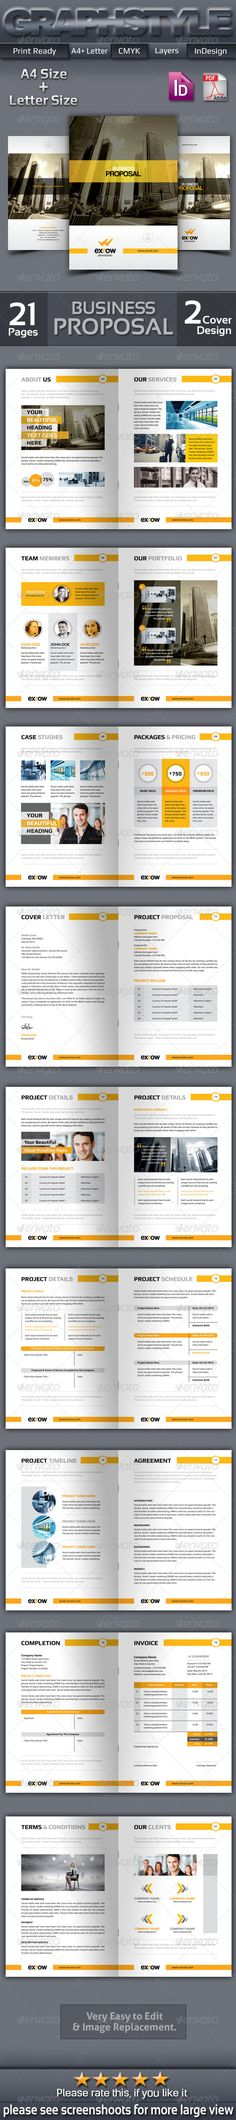 agency proposal template%0A cover letter for recruitment agency